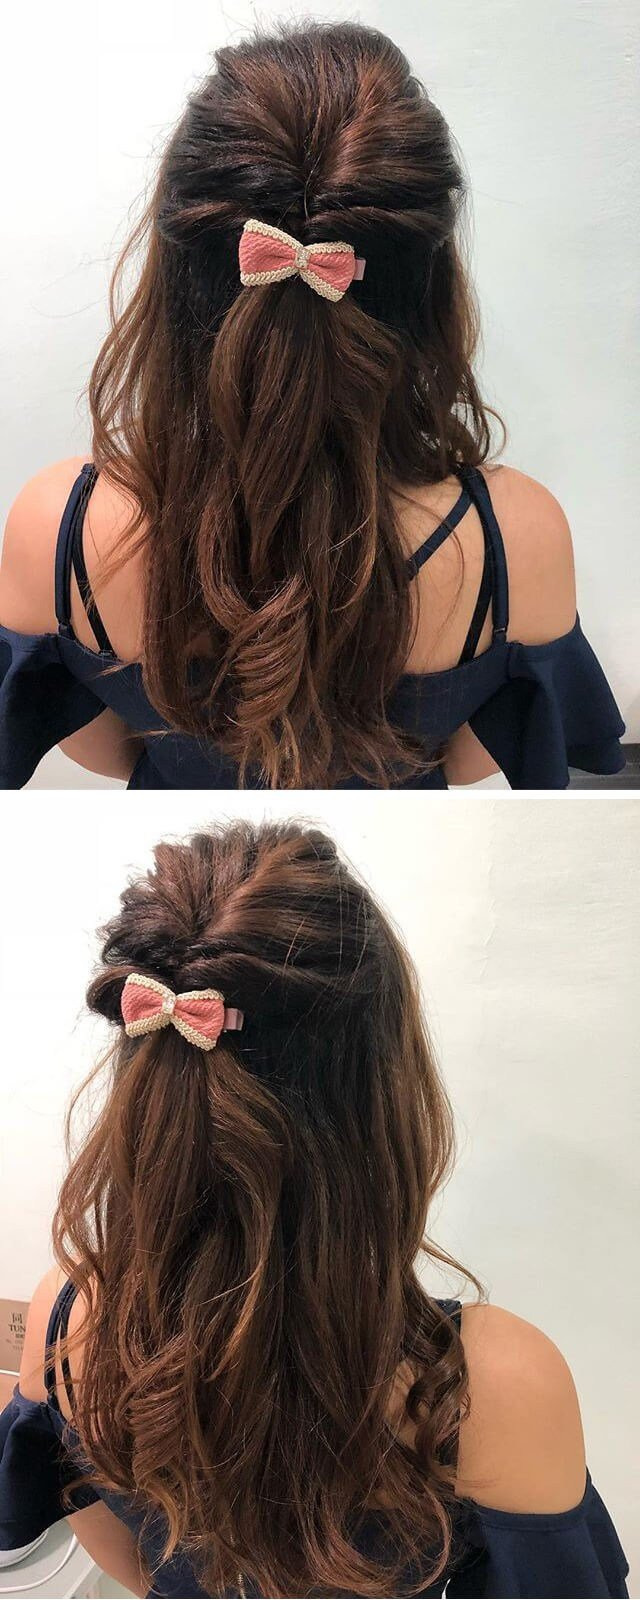 The Best Easy Everyday Hairstyles For Medium Hair On Sensod Sensod Pictures